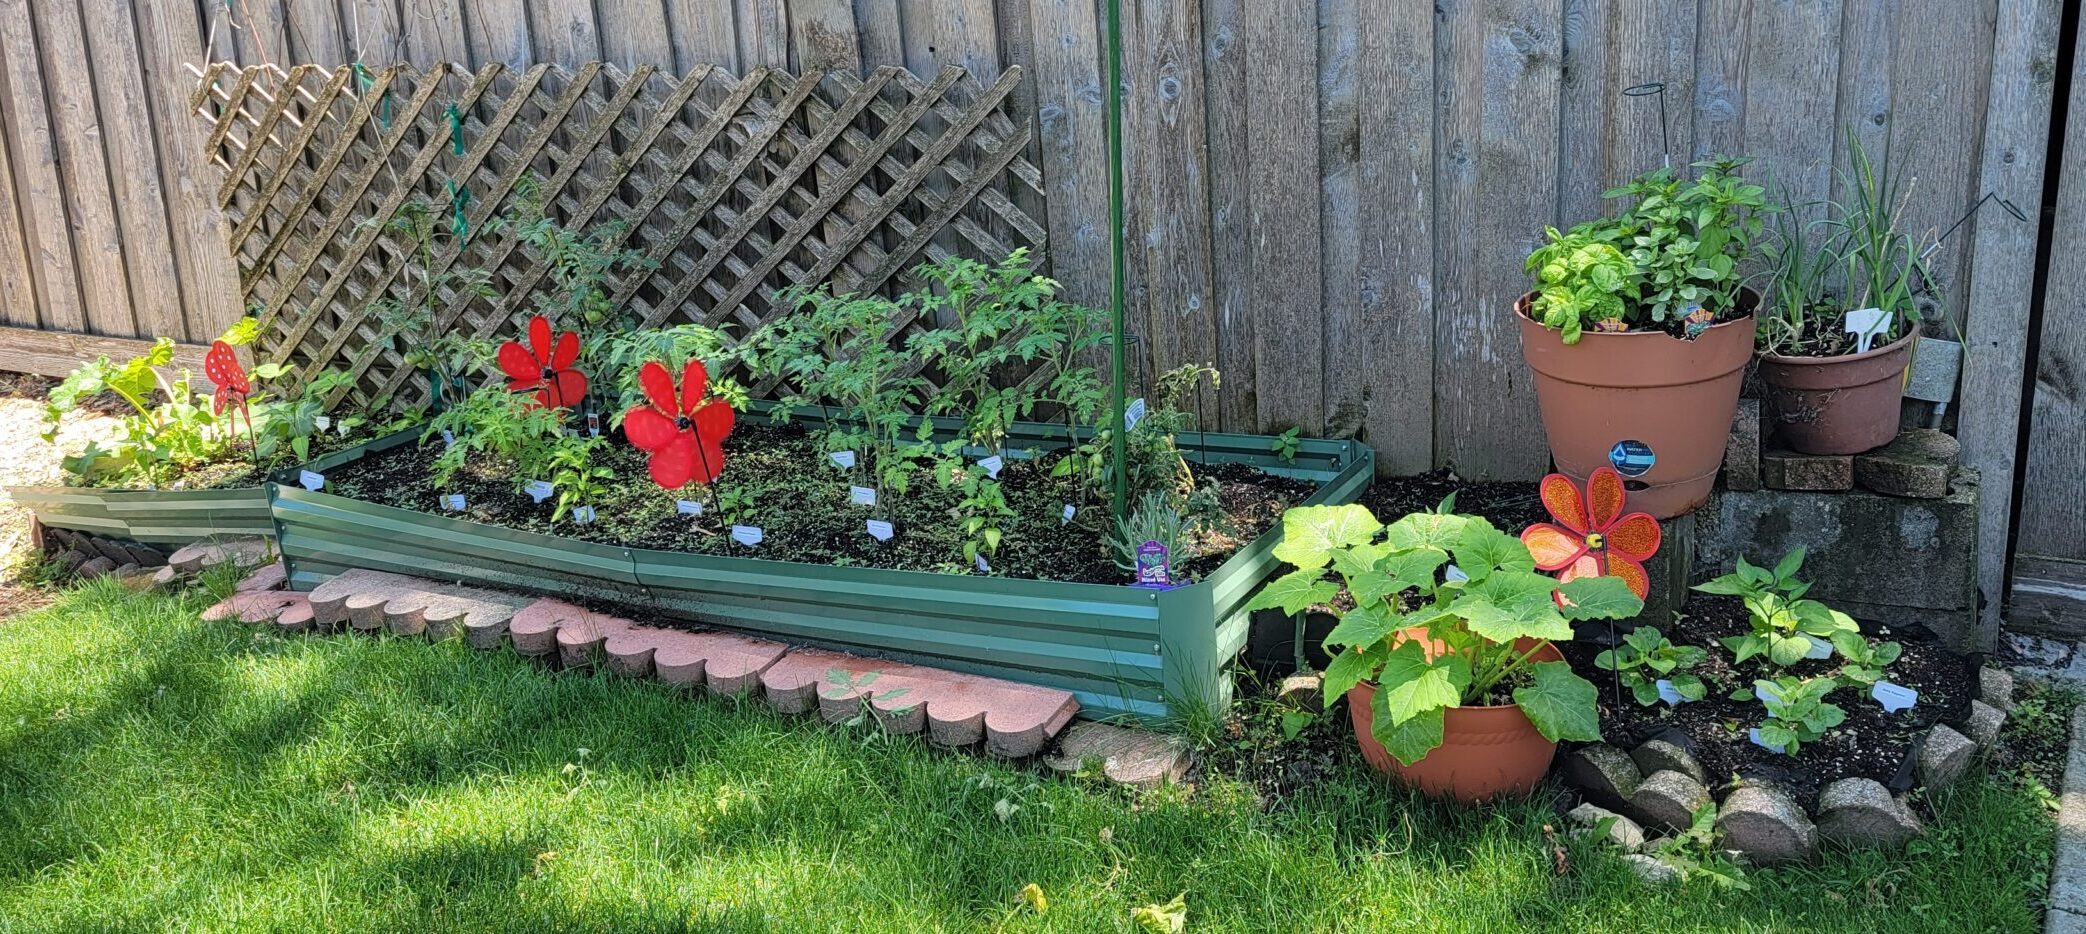 This is what the Optimistic Garden looks like today.